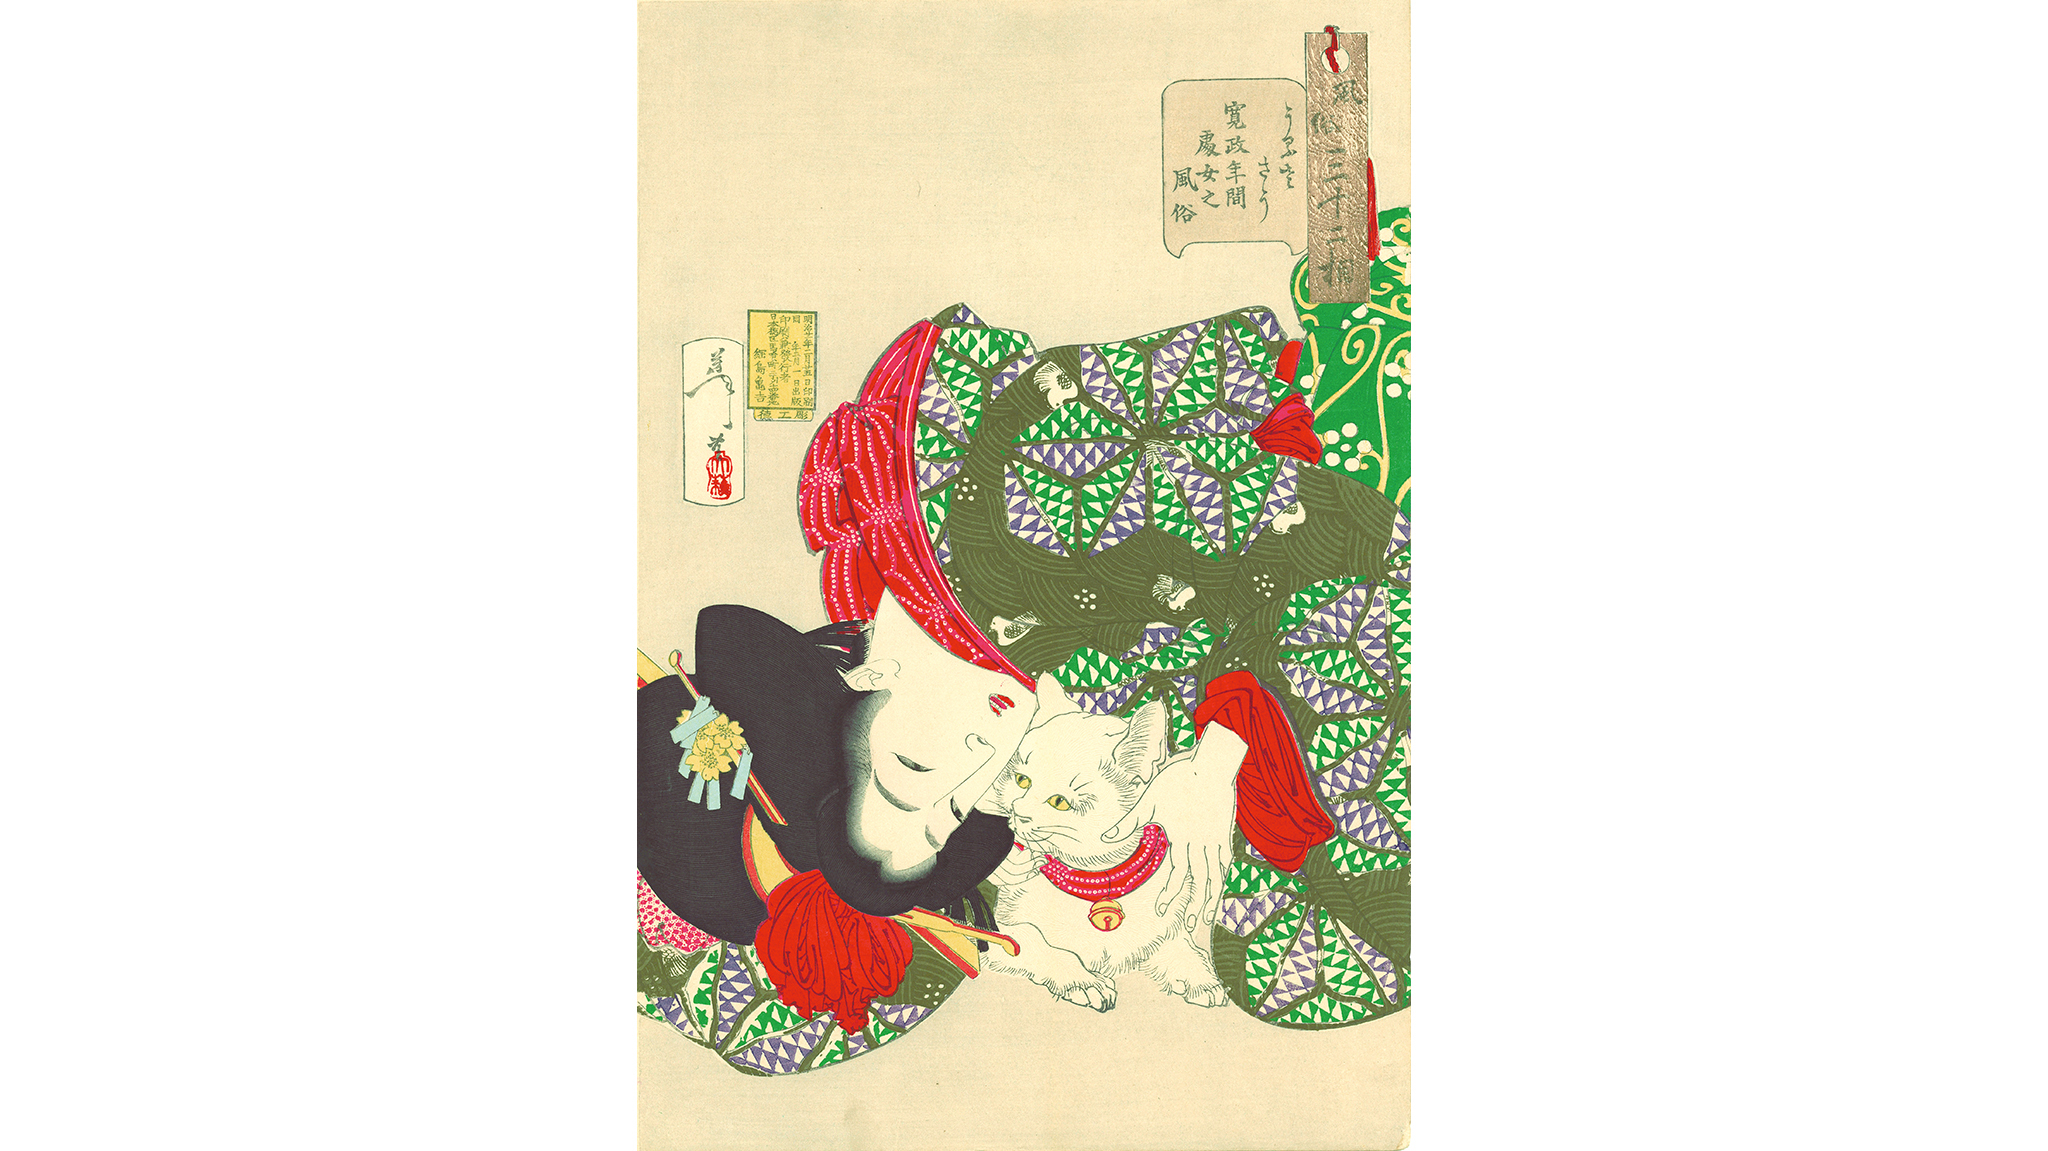 Tsukioka Yoshitoshi (1839–1892), Looking Tiresome: The Appearance of a Virgin of the Kansei Era from the series Thirty-two Aspects of Customs and Manners, 1888. Color woodblock print; 22 ½ x 16 inches.